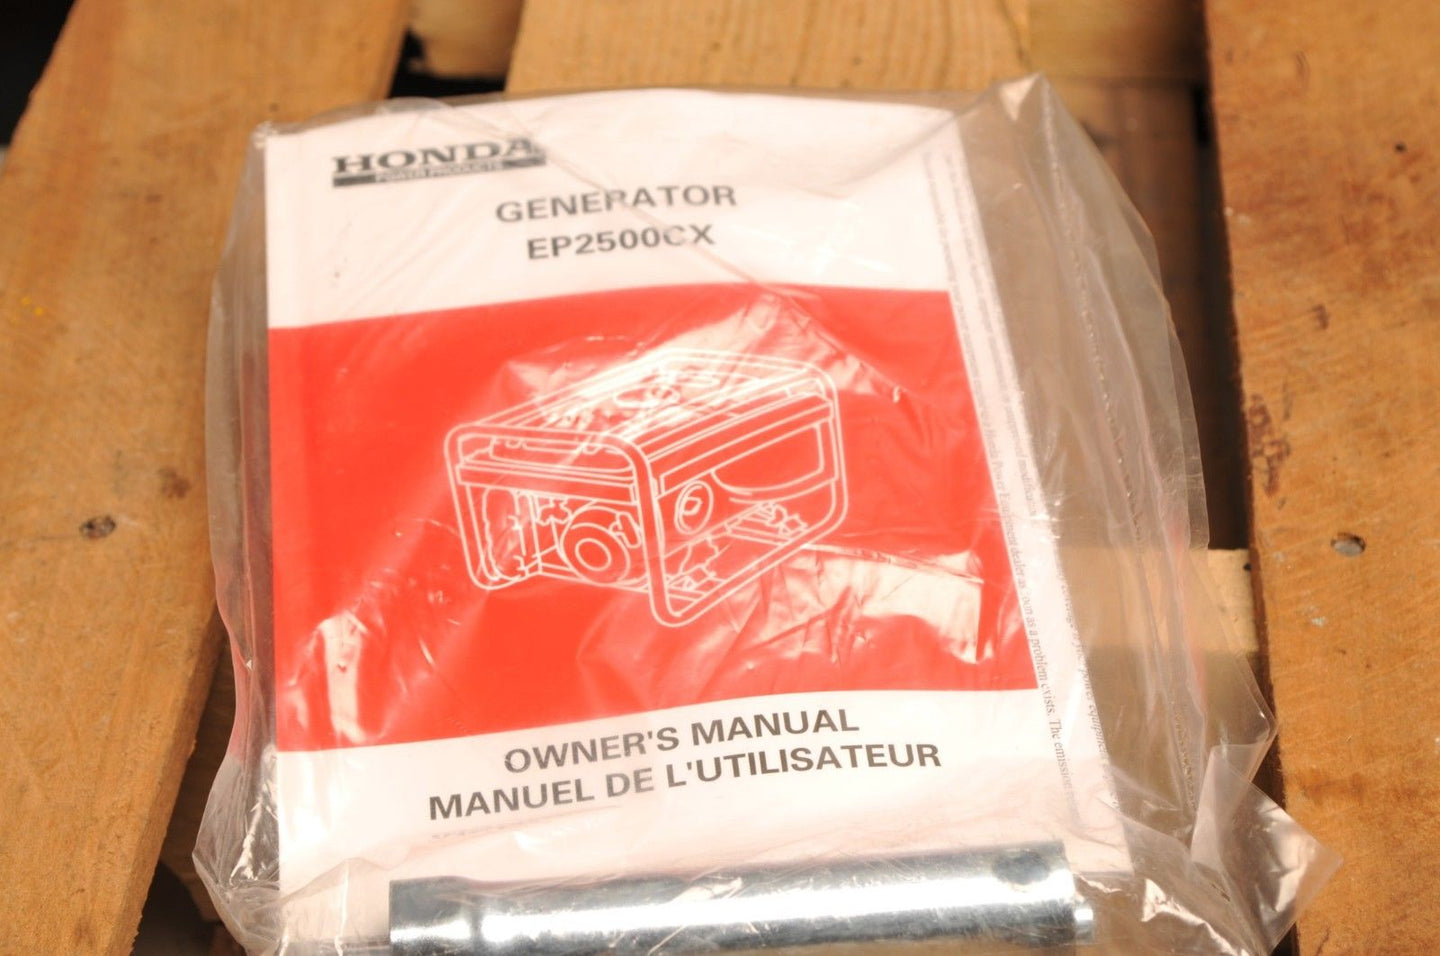 GENUINE HONDA OWNER'S MANUAL GENERATOR EP2500CX ENGLISH/FRENCH + TOOL!